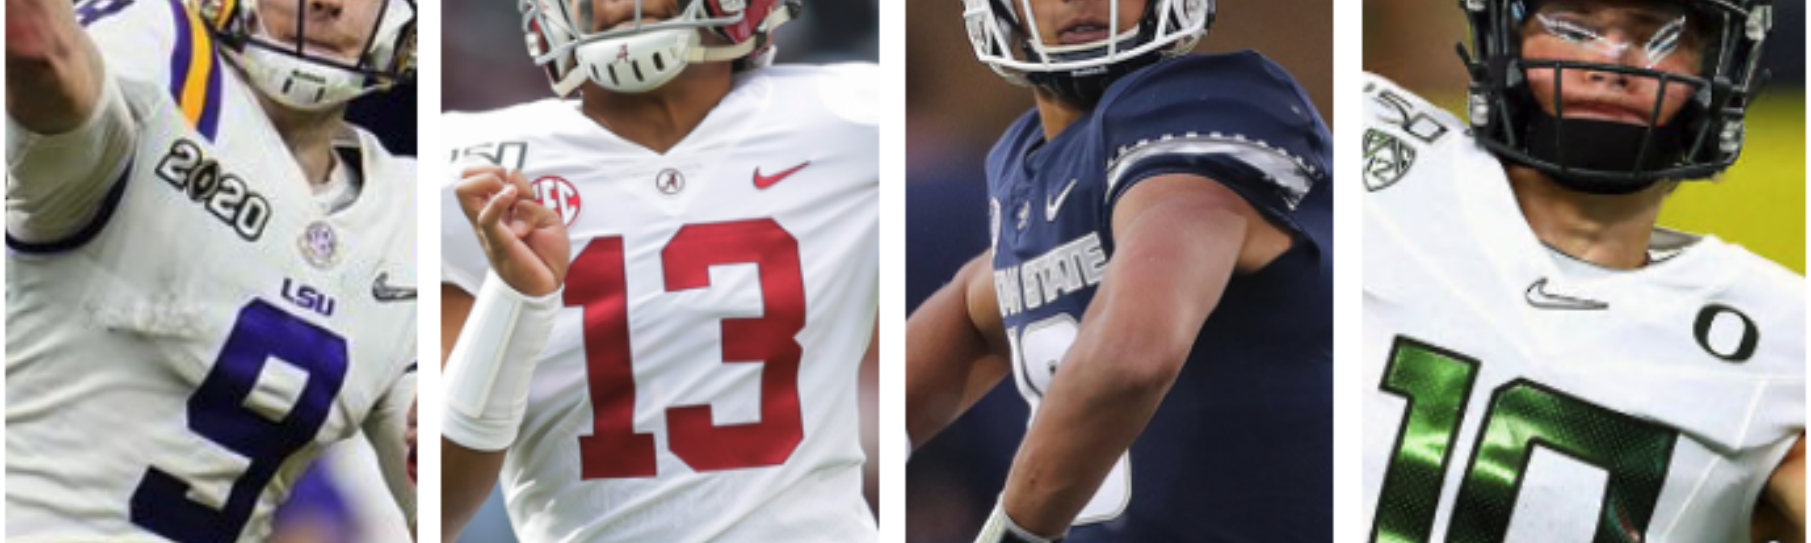 Nfl Draft How Strong Is Joe Burrow S Arm How Quick Is Tua Tagovailoa S Release I Frame Counted More Than 400 Throws To Find Out By Tim Dix Medium